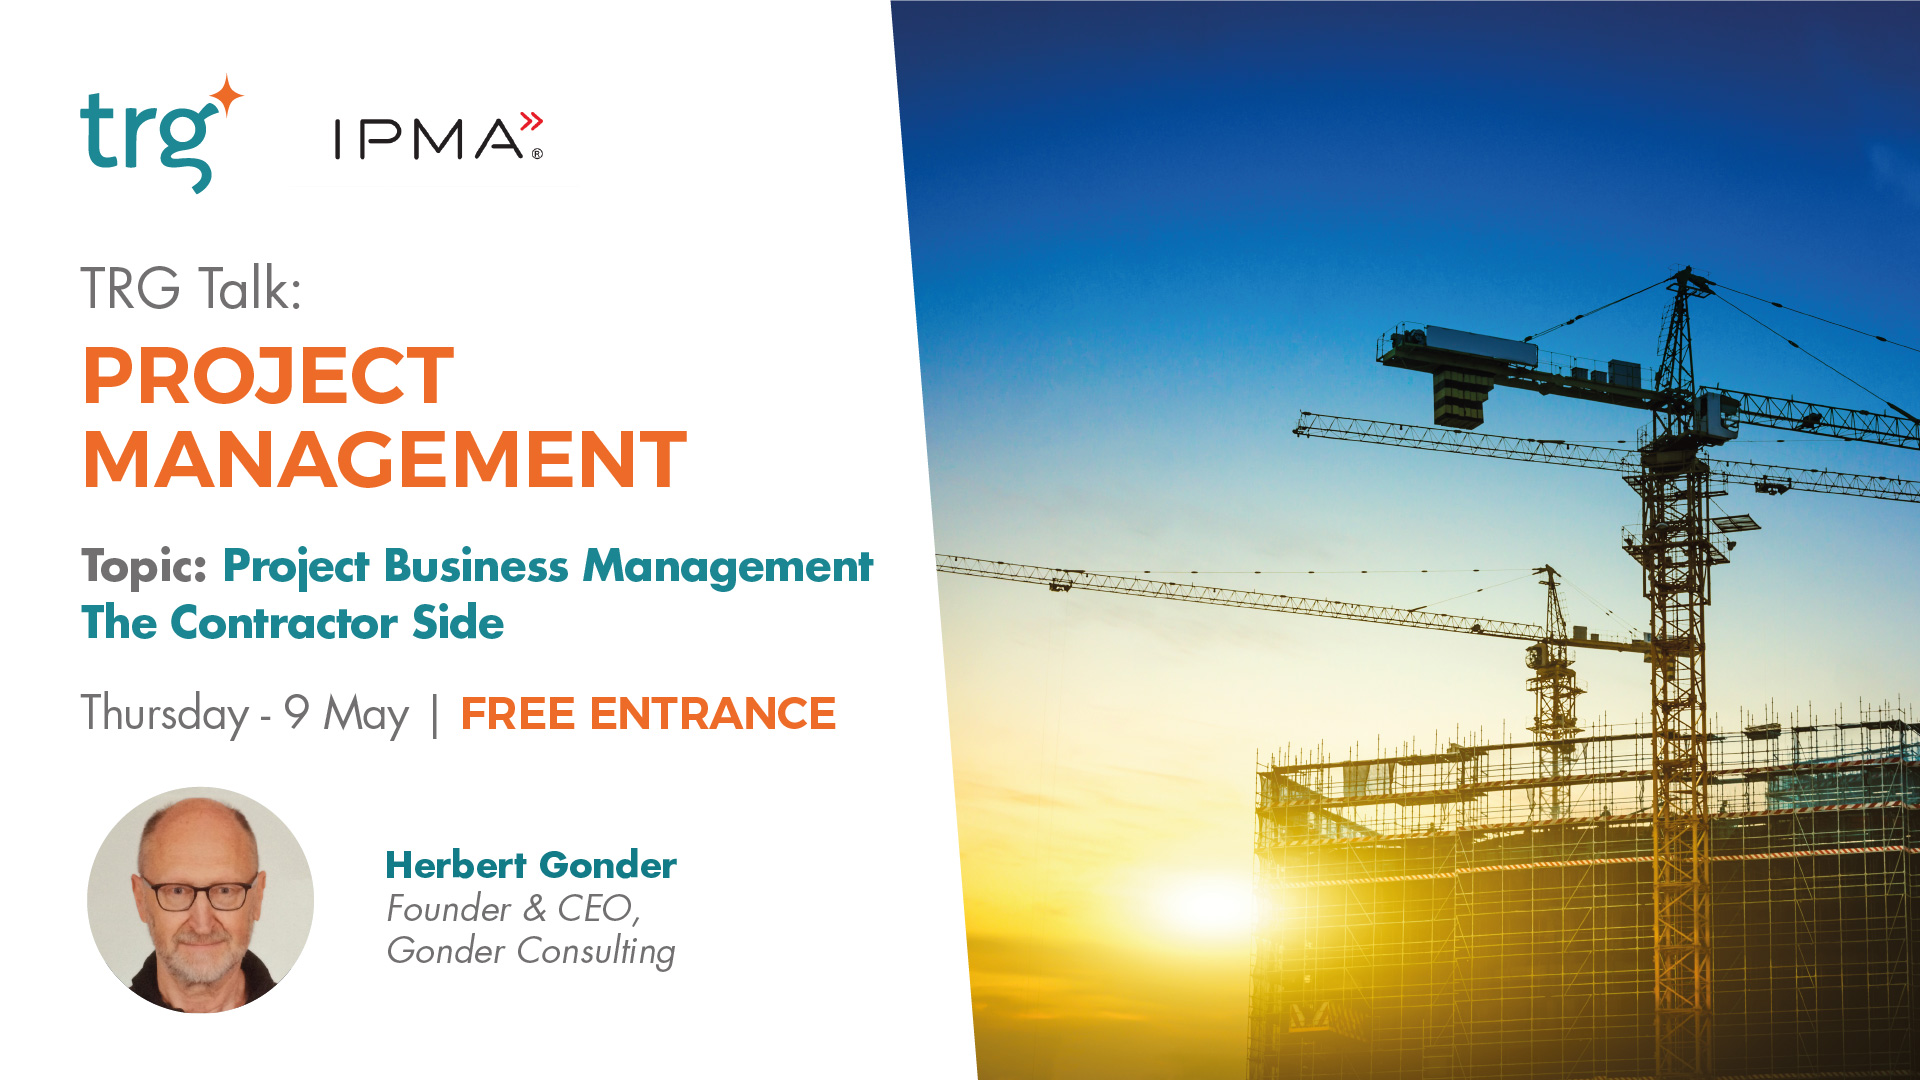 TRG Talk Project Management Event banner